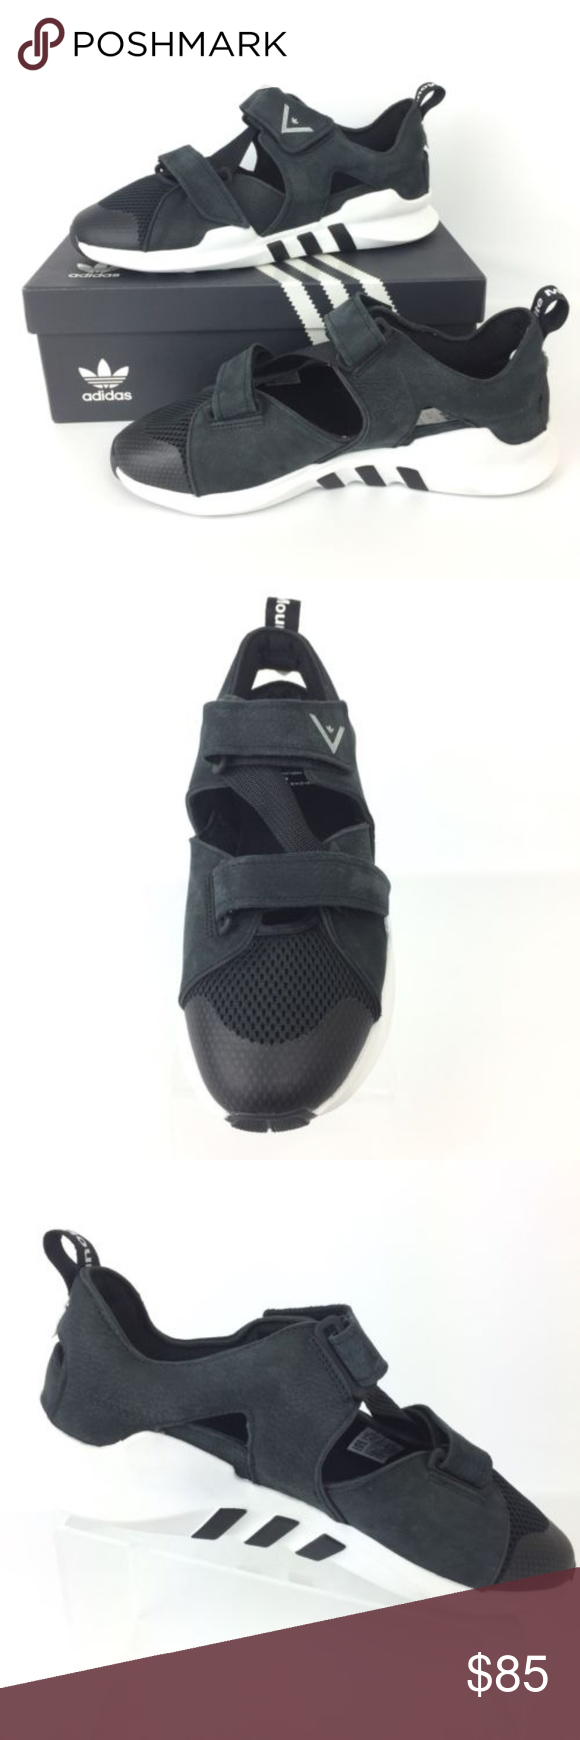 04a9cf92bc82 Adidas Outdoors Sandals By White Mountaineering   Brand New   Adidas  Outdoors Sandals By White Mountaineering Men s Size  9 US WM ADV SANDAL  BB2741  150 ...